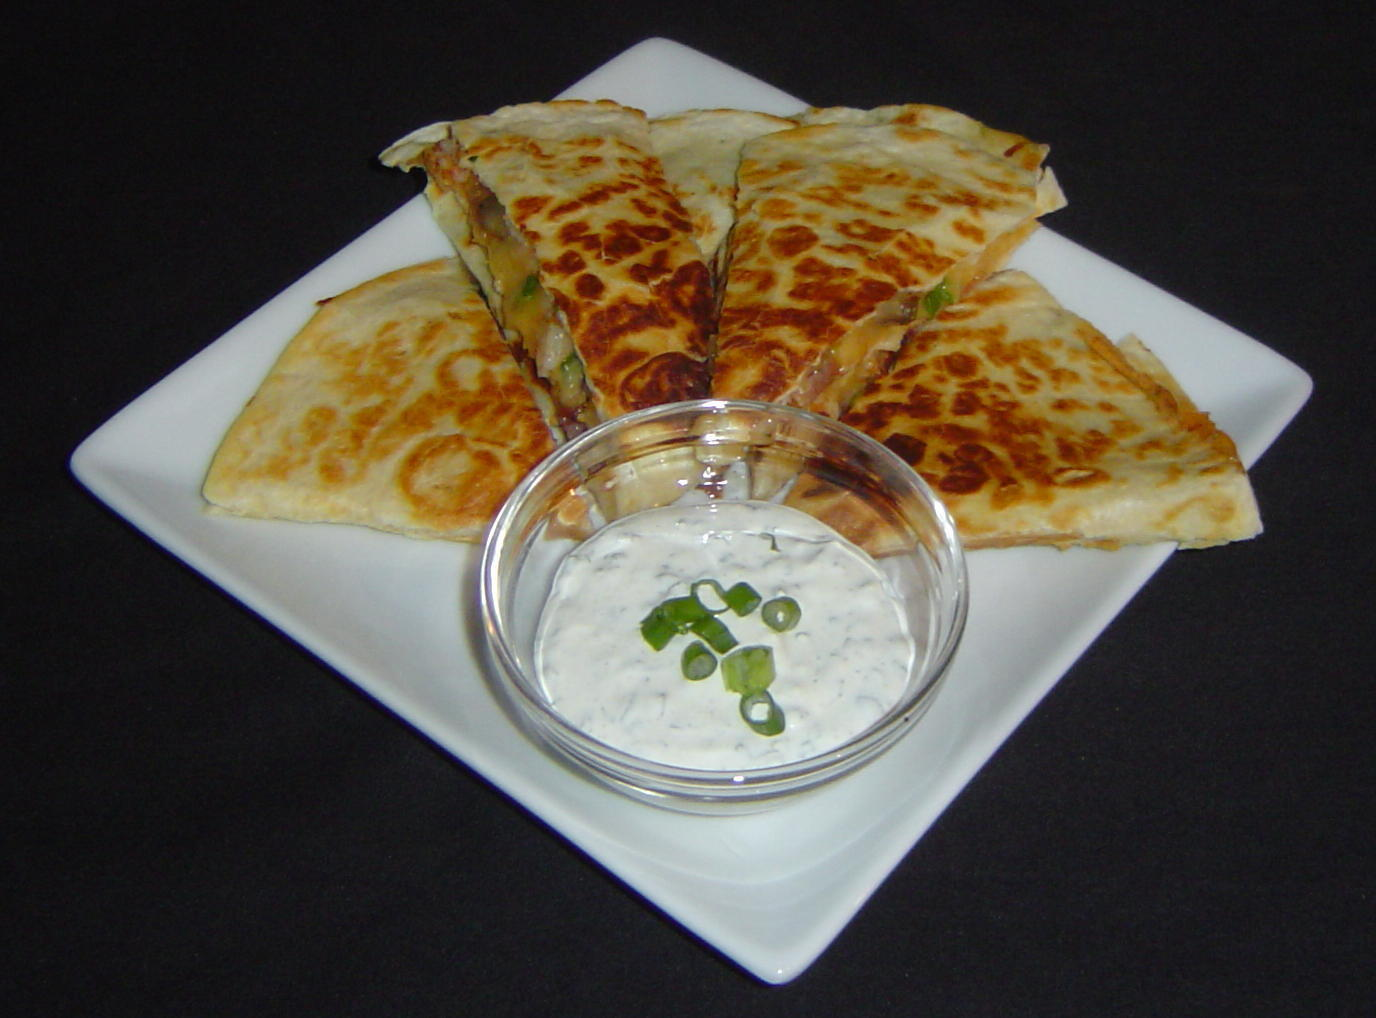 Shrimp, Bacon, and Mushroom Quesadillas with Mexican Herbed Sour Cream